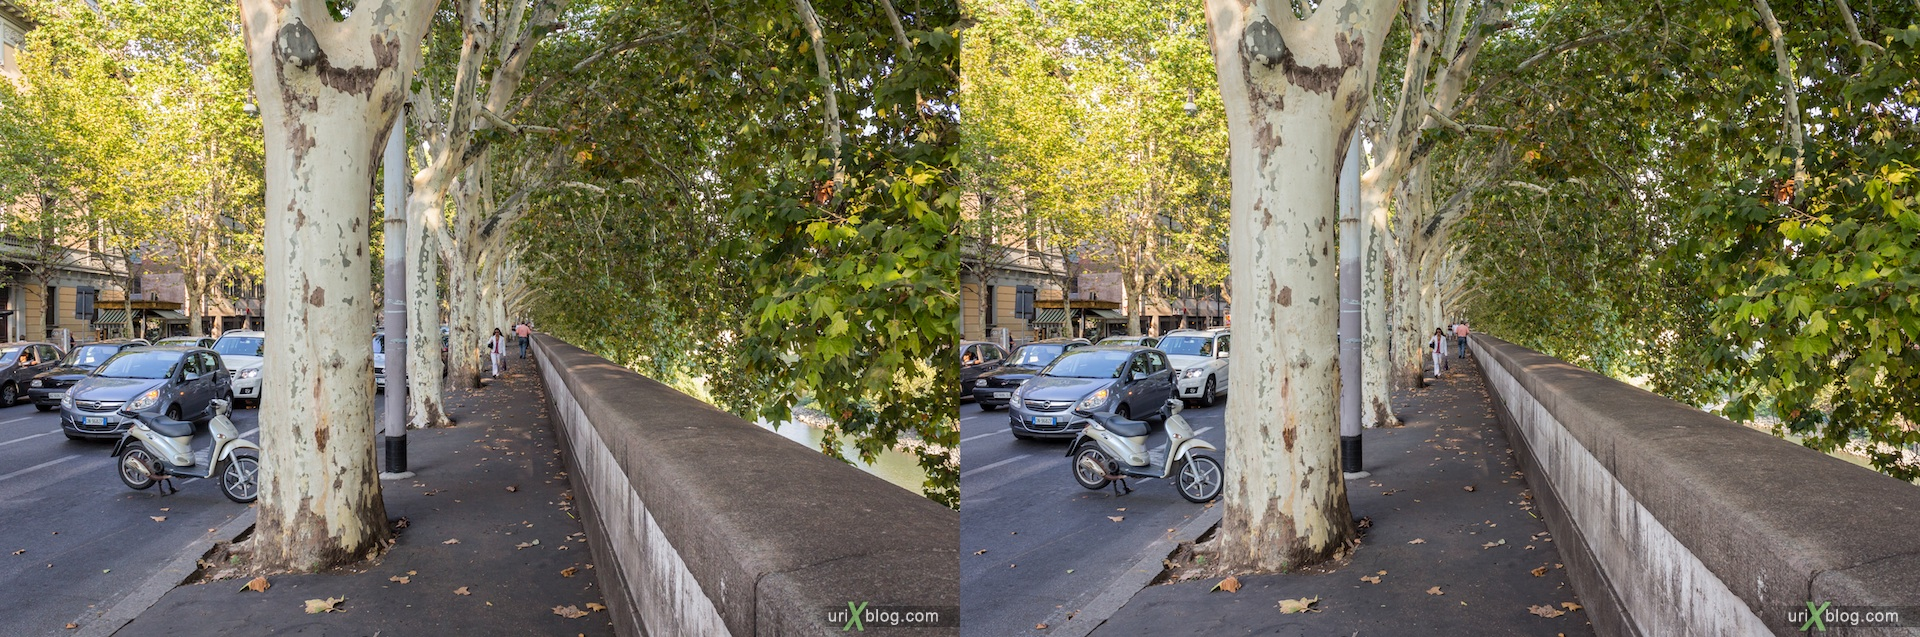 2012, Lungotevere de Cenci street, embankment, trees, 3D, stereo pair, cross-eyed, crossview, cross view stereo pair